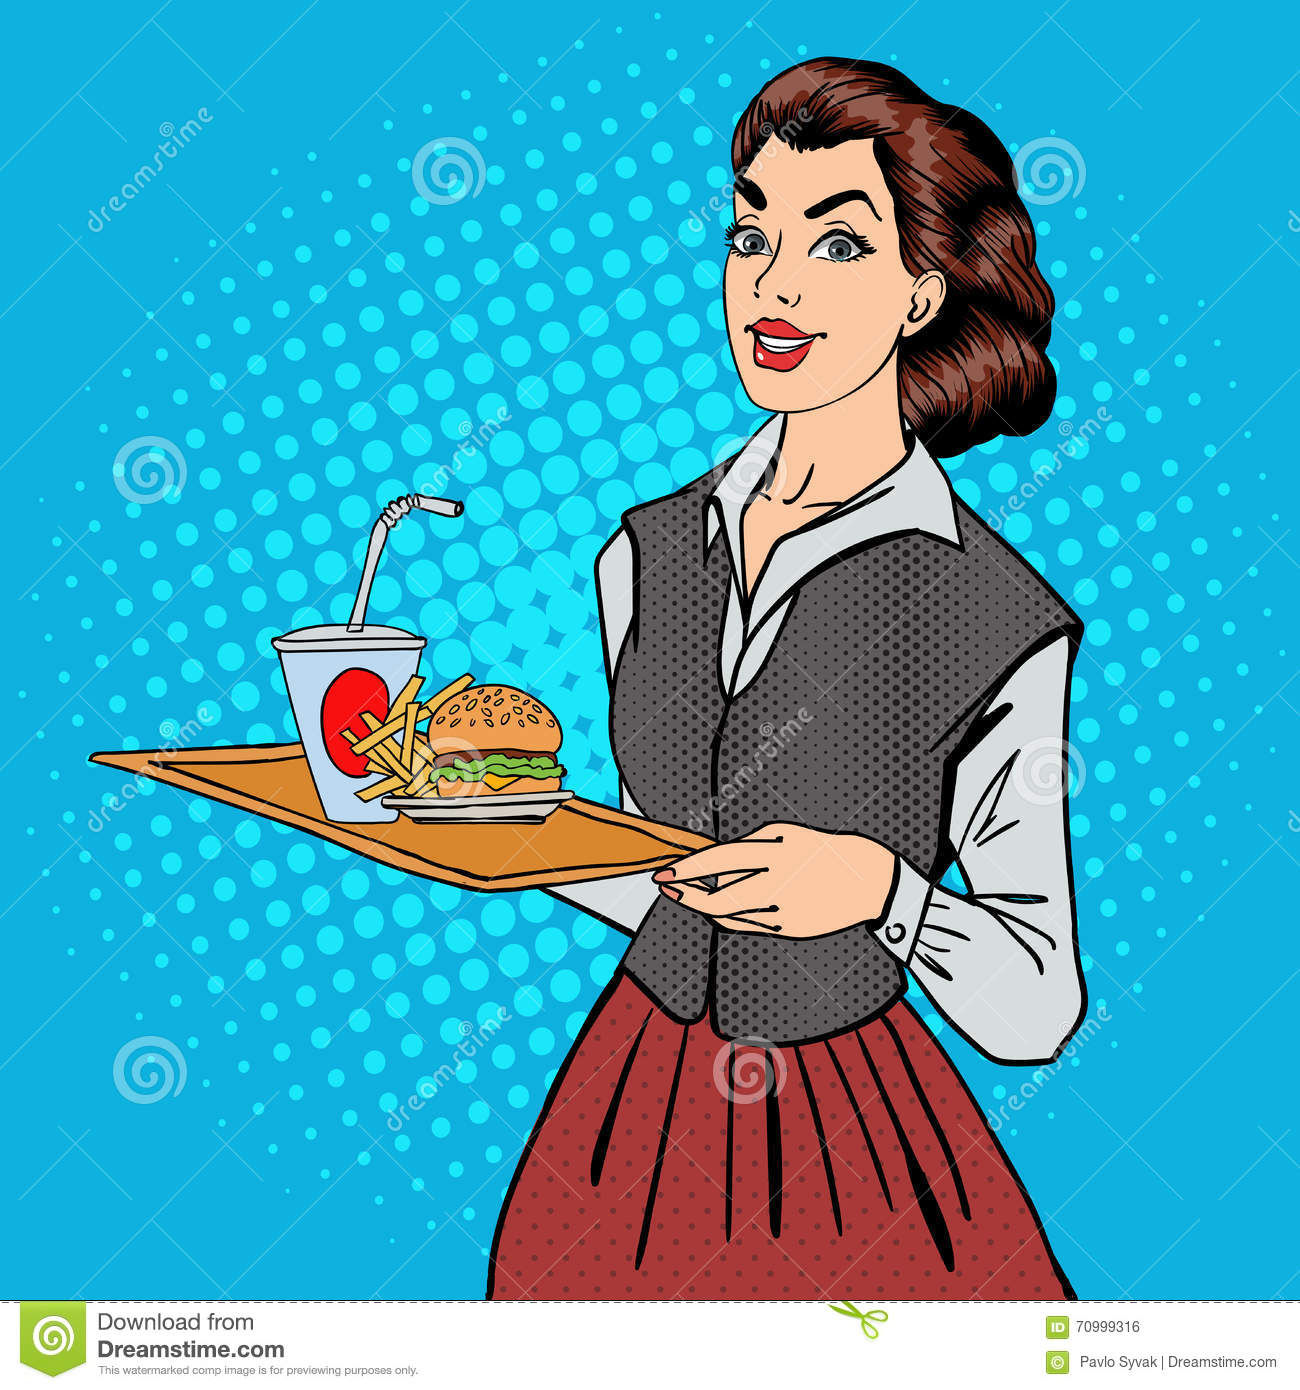 Waitress With Fast Food. Woman Holding A Tray With Burger Stock.